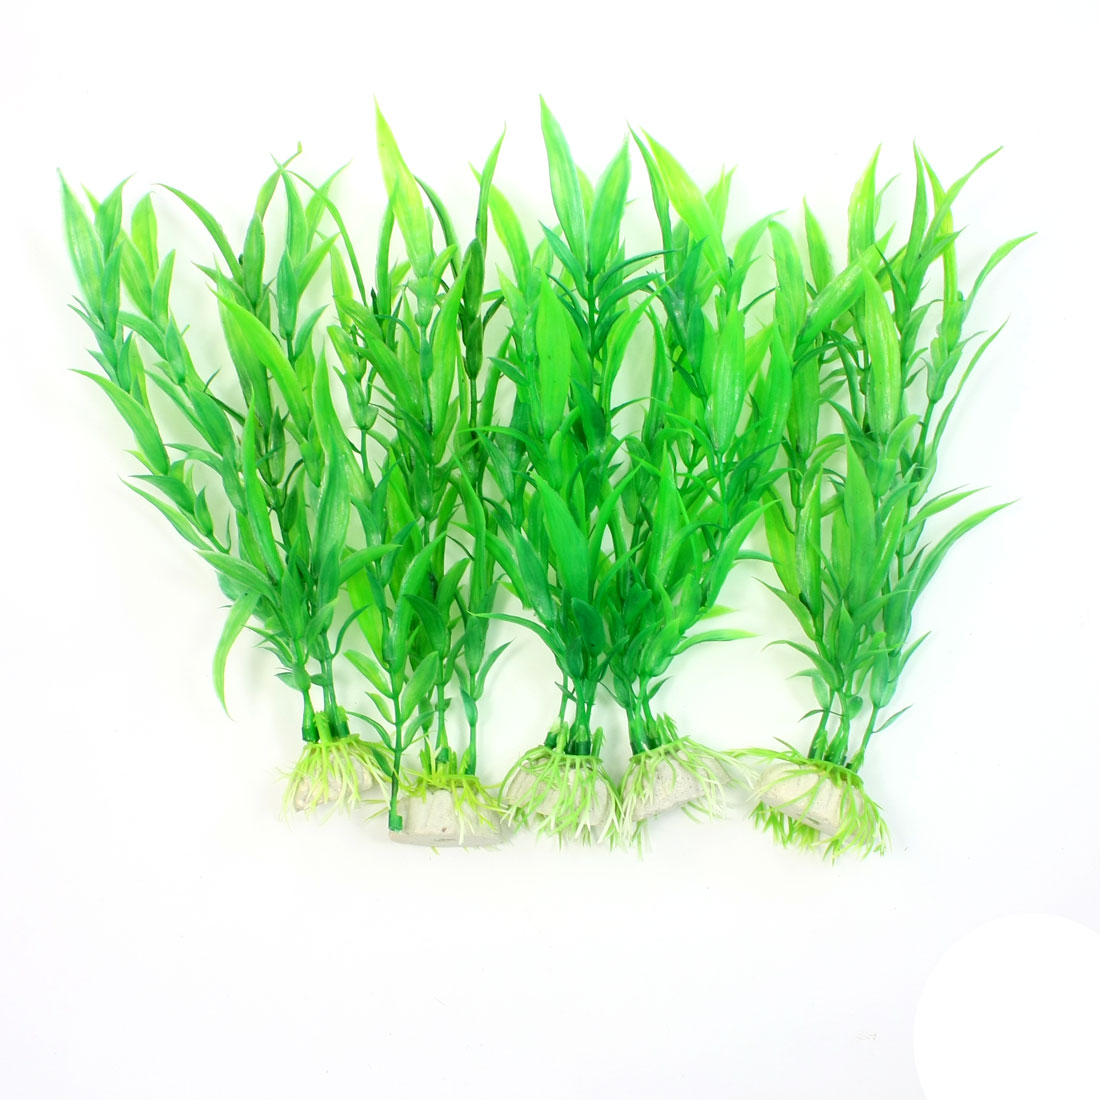 "5 Pcs 6.9"" Green Simulation Underwater Plant Grass for Fish Tank"